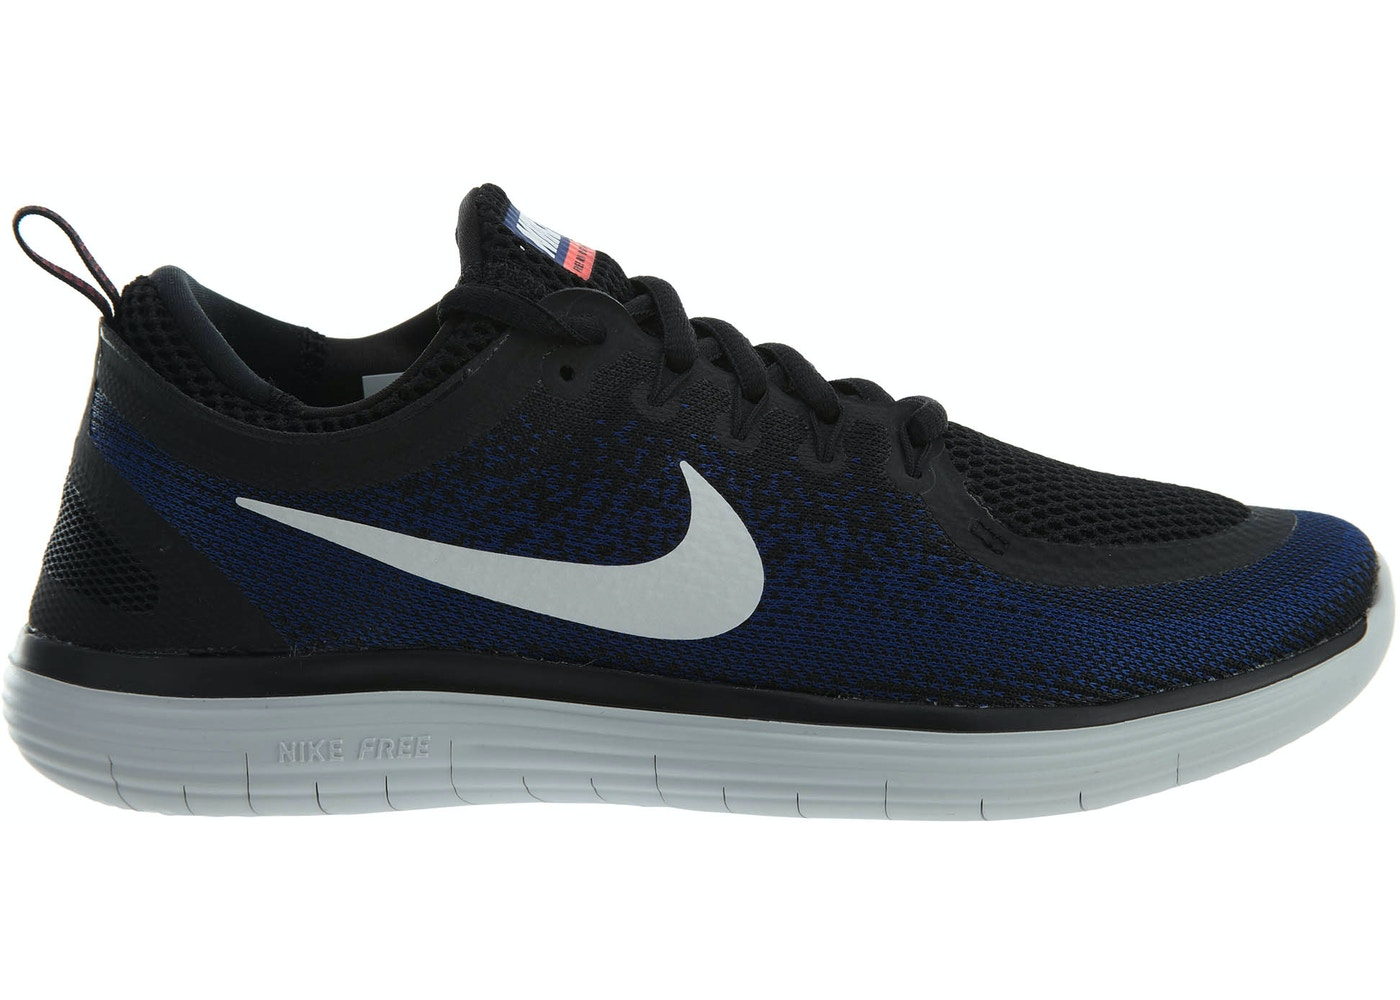 sale retailer e6883 f3ffd Nike Free Rn Distance 2 Black White-Deep Royal Blue